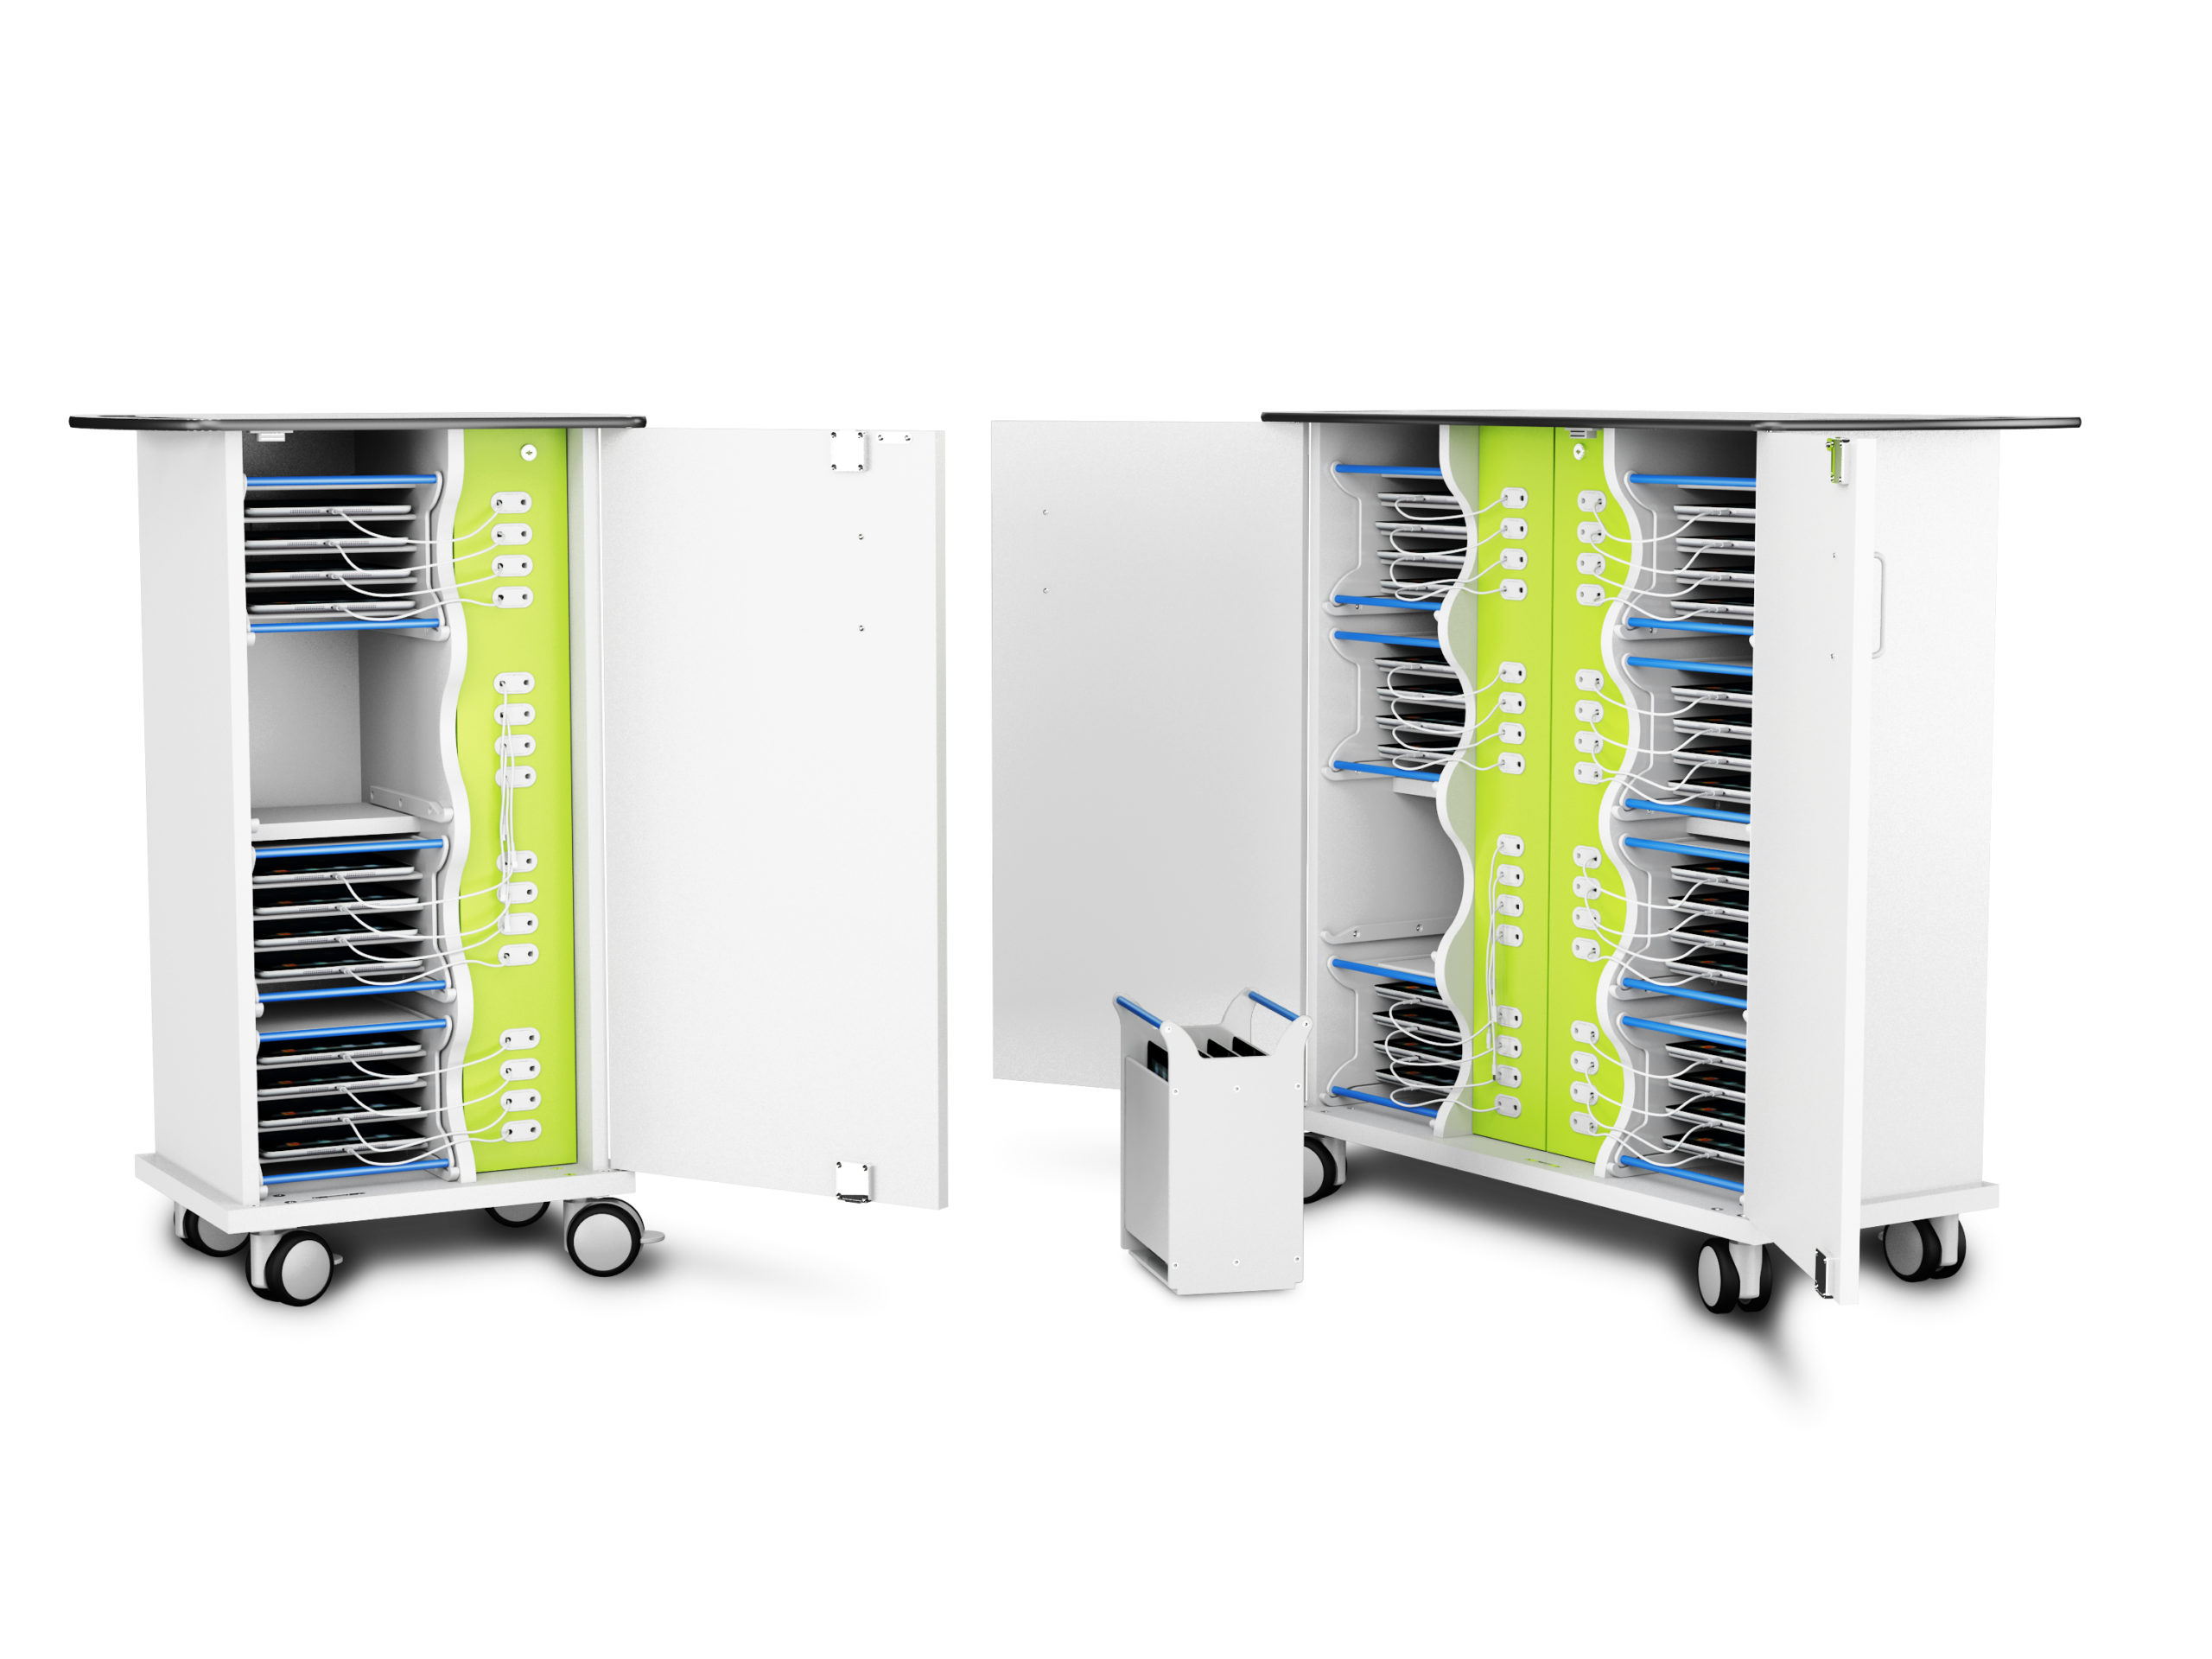 ipad tablet charging trolley with baskets secure and stylish cart